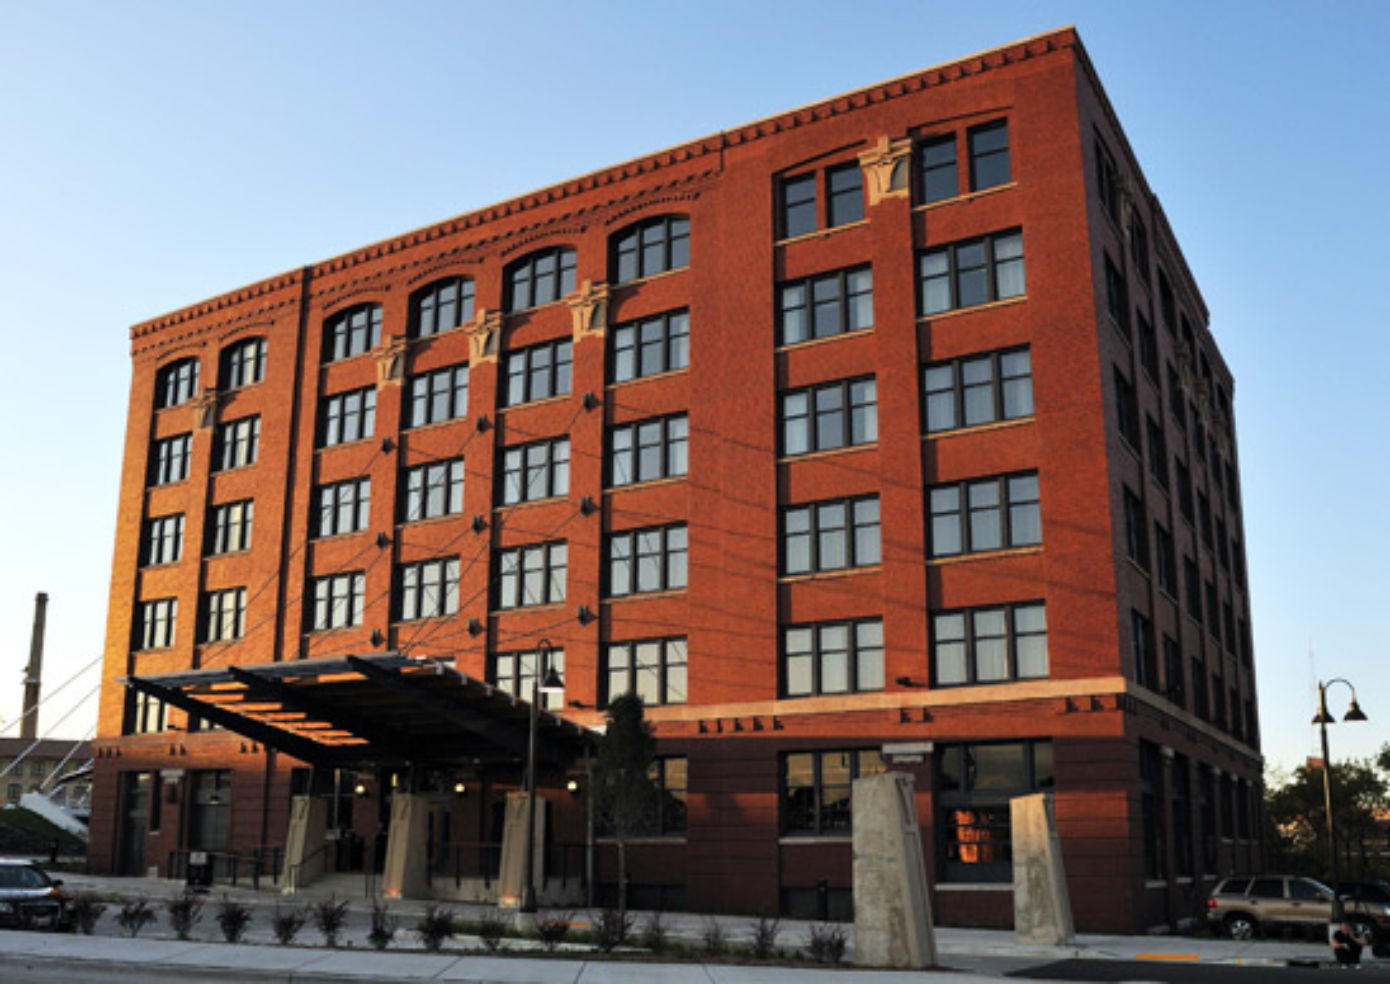 The Iron Horse Hotel in Milwaukee, down the street from the Harley-Davidson Museum